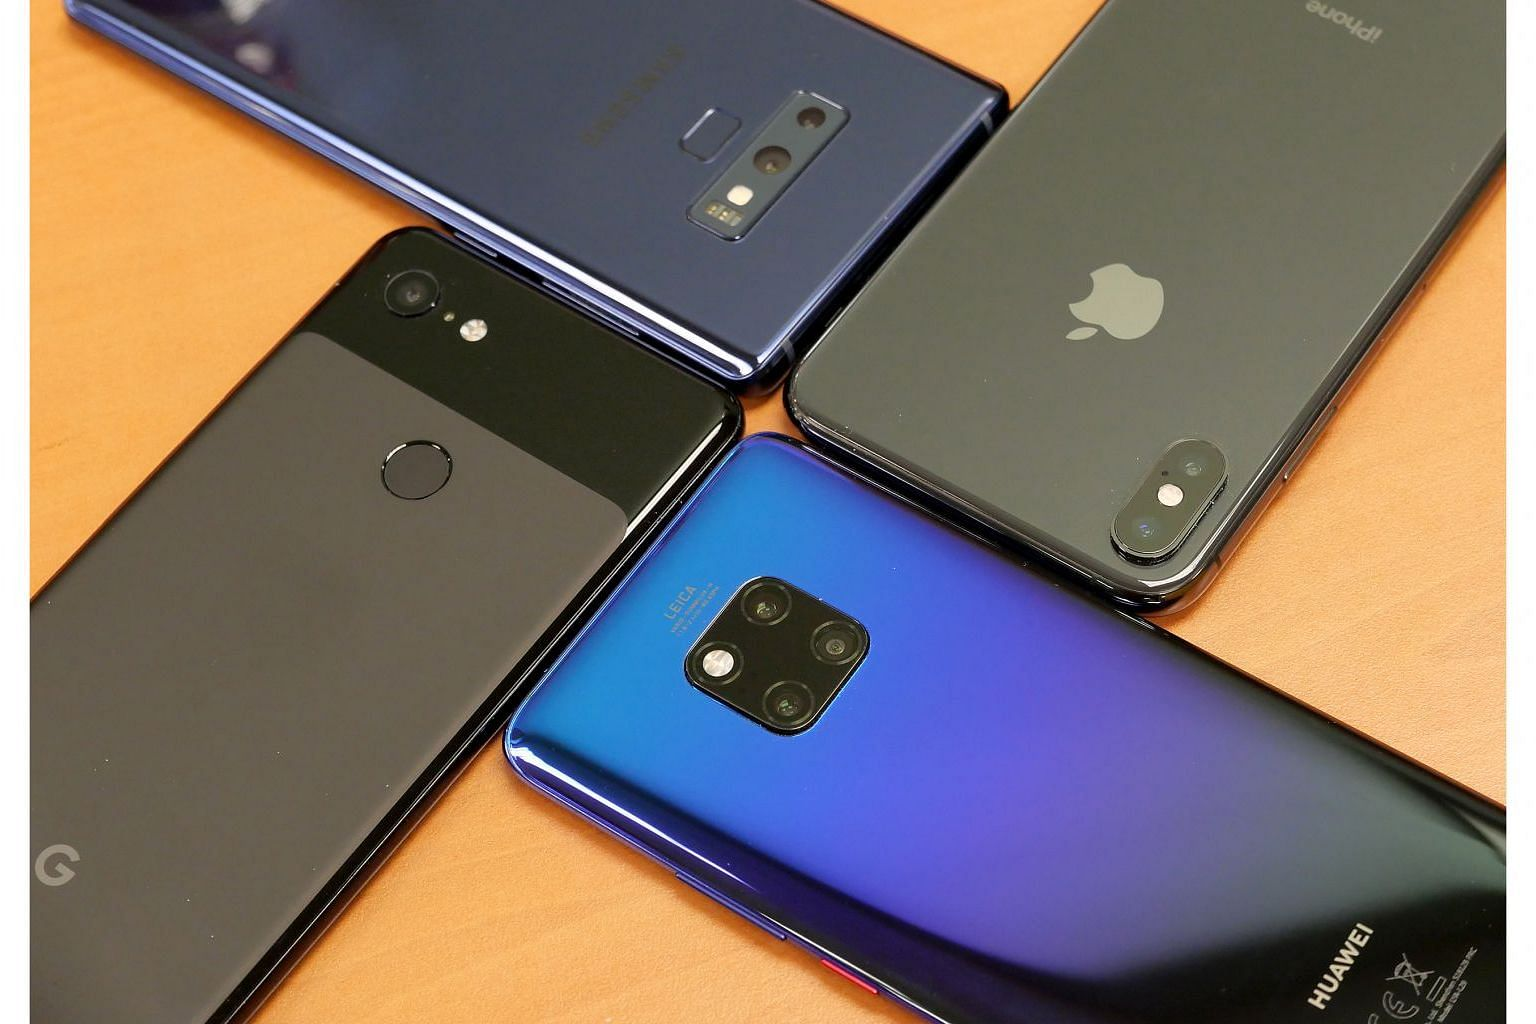 Smartphone Camera Shoot-out: (From top right clockwise) Samsung Galaxy Note9, Apple iPhone XS Max, Huawei Mate 20 Pro and Google Pixel 3 XL. ST PHOTO: TREVOR TAN